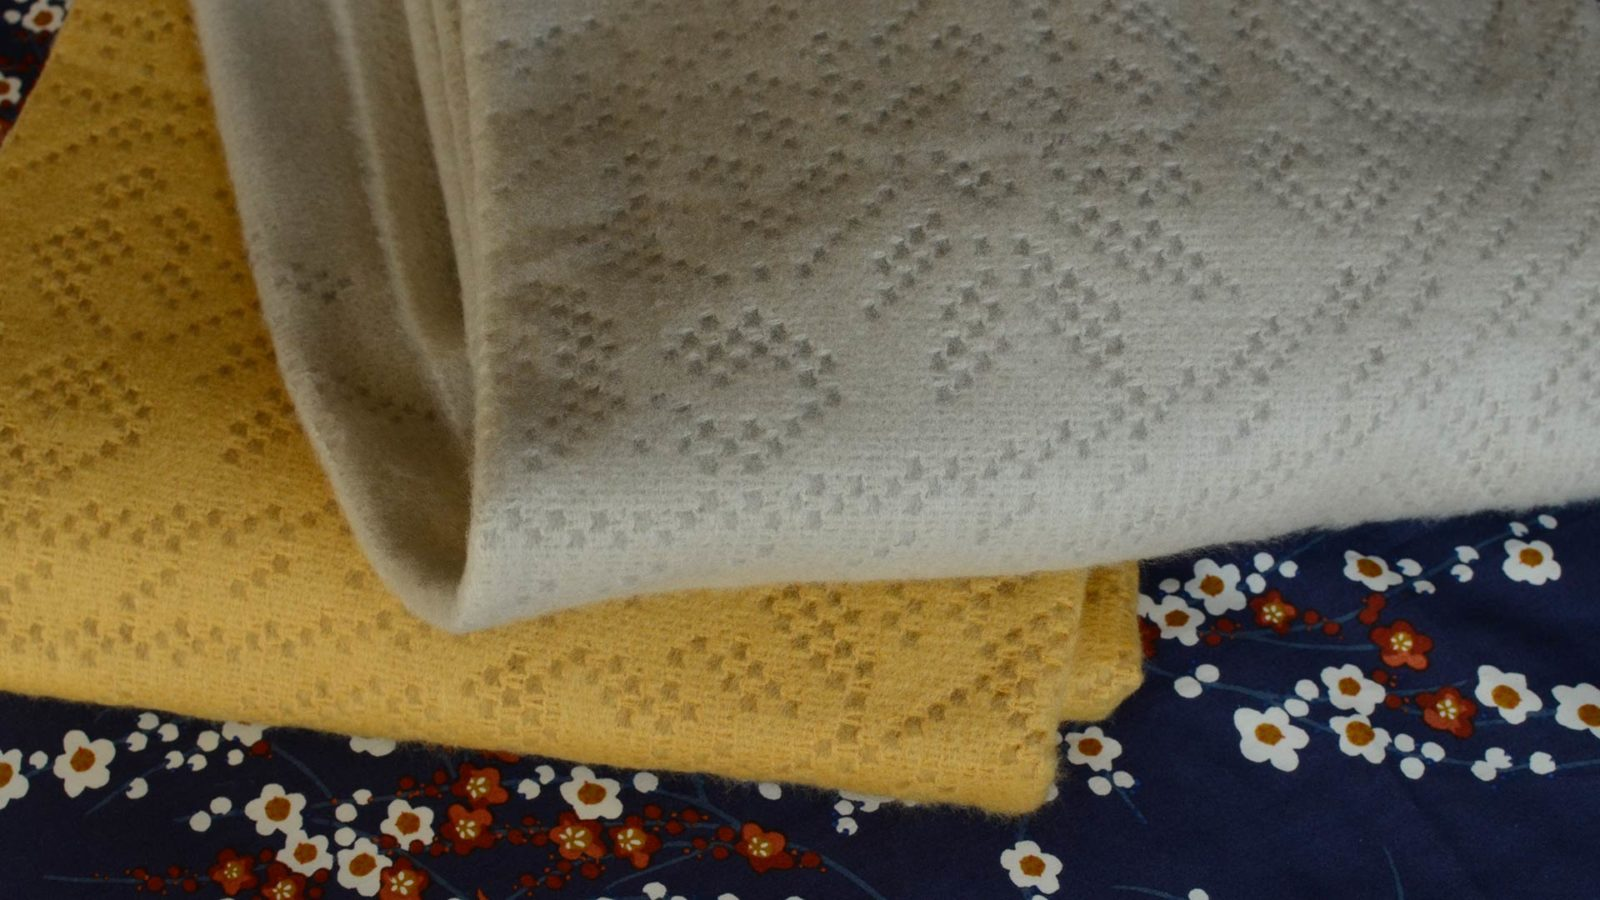 soft-lace-design-throws